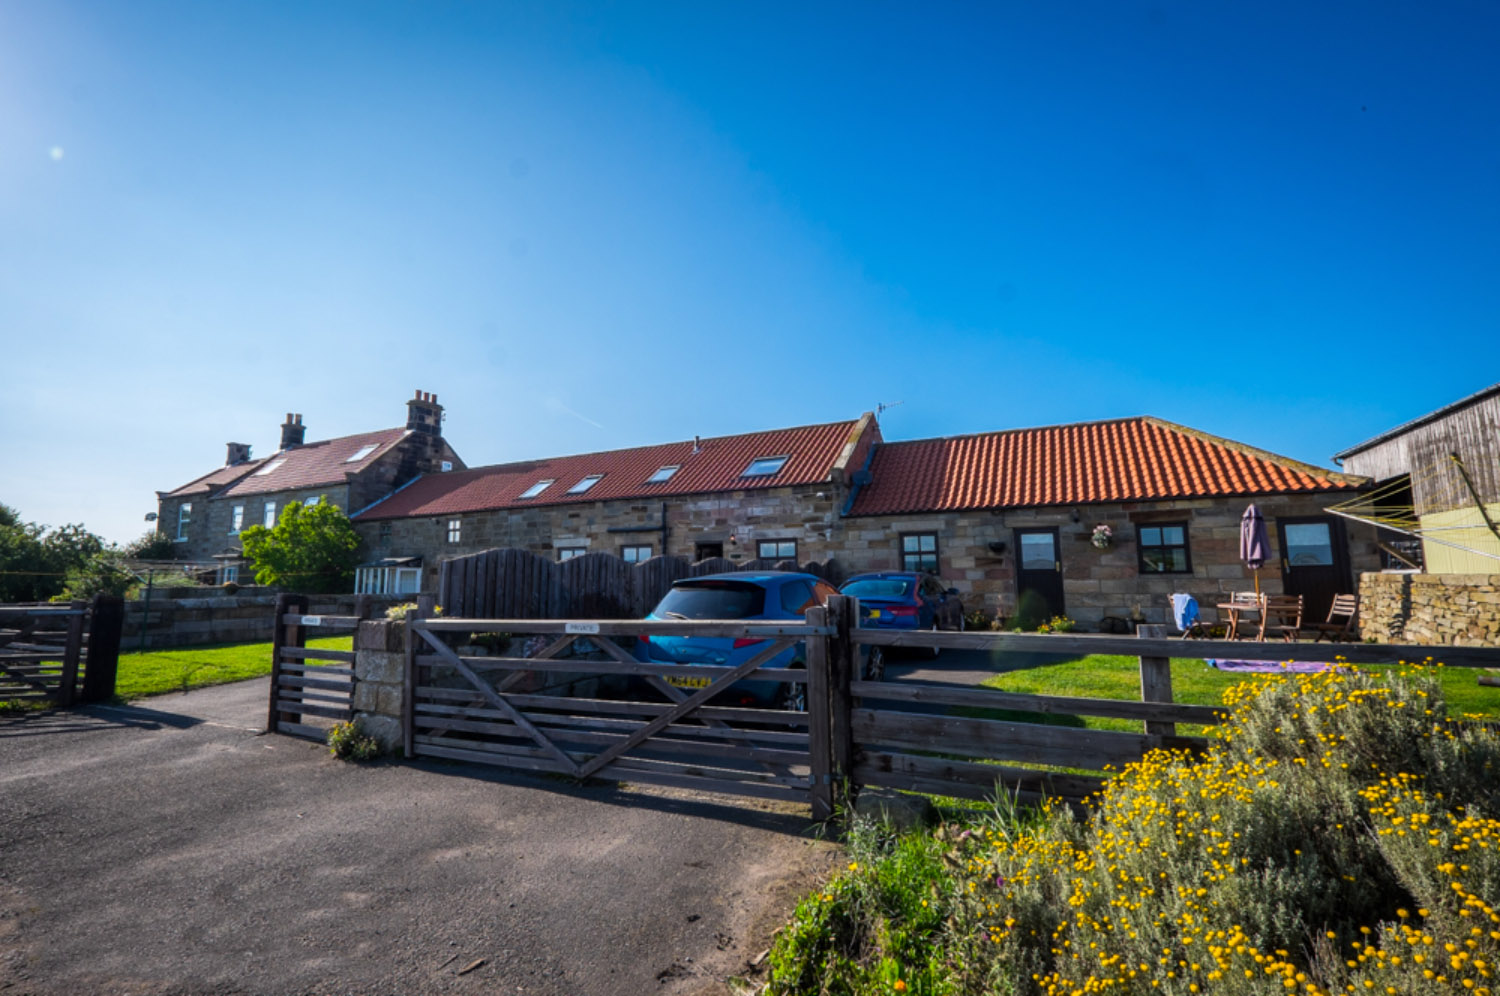 42 Campsites in Whitby North Yorkshire